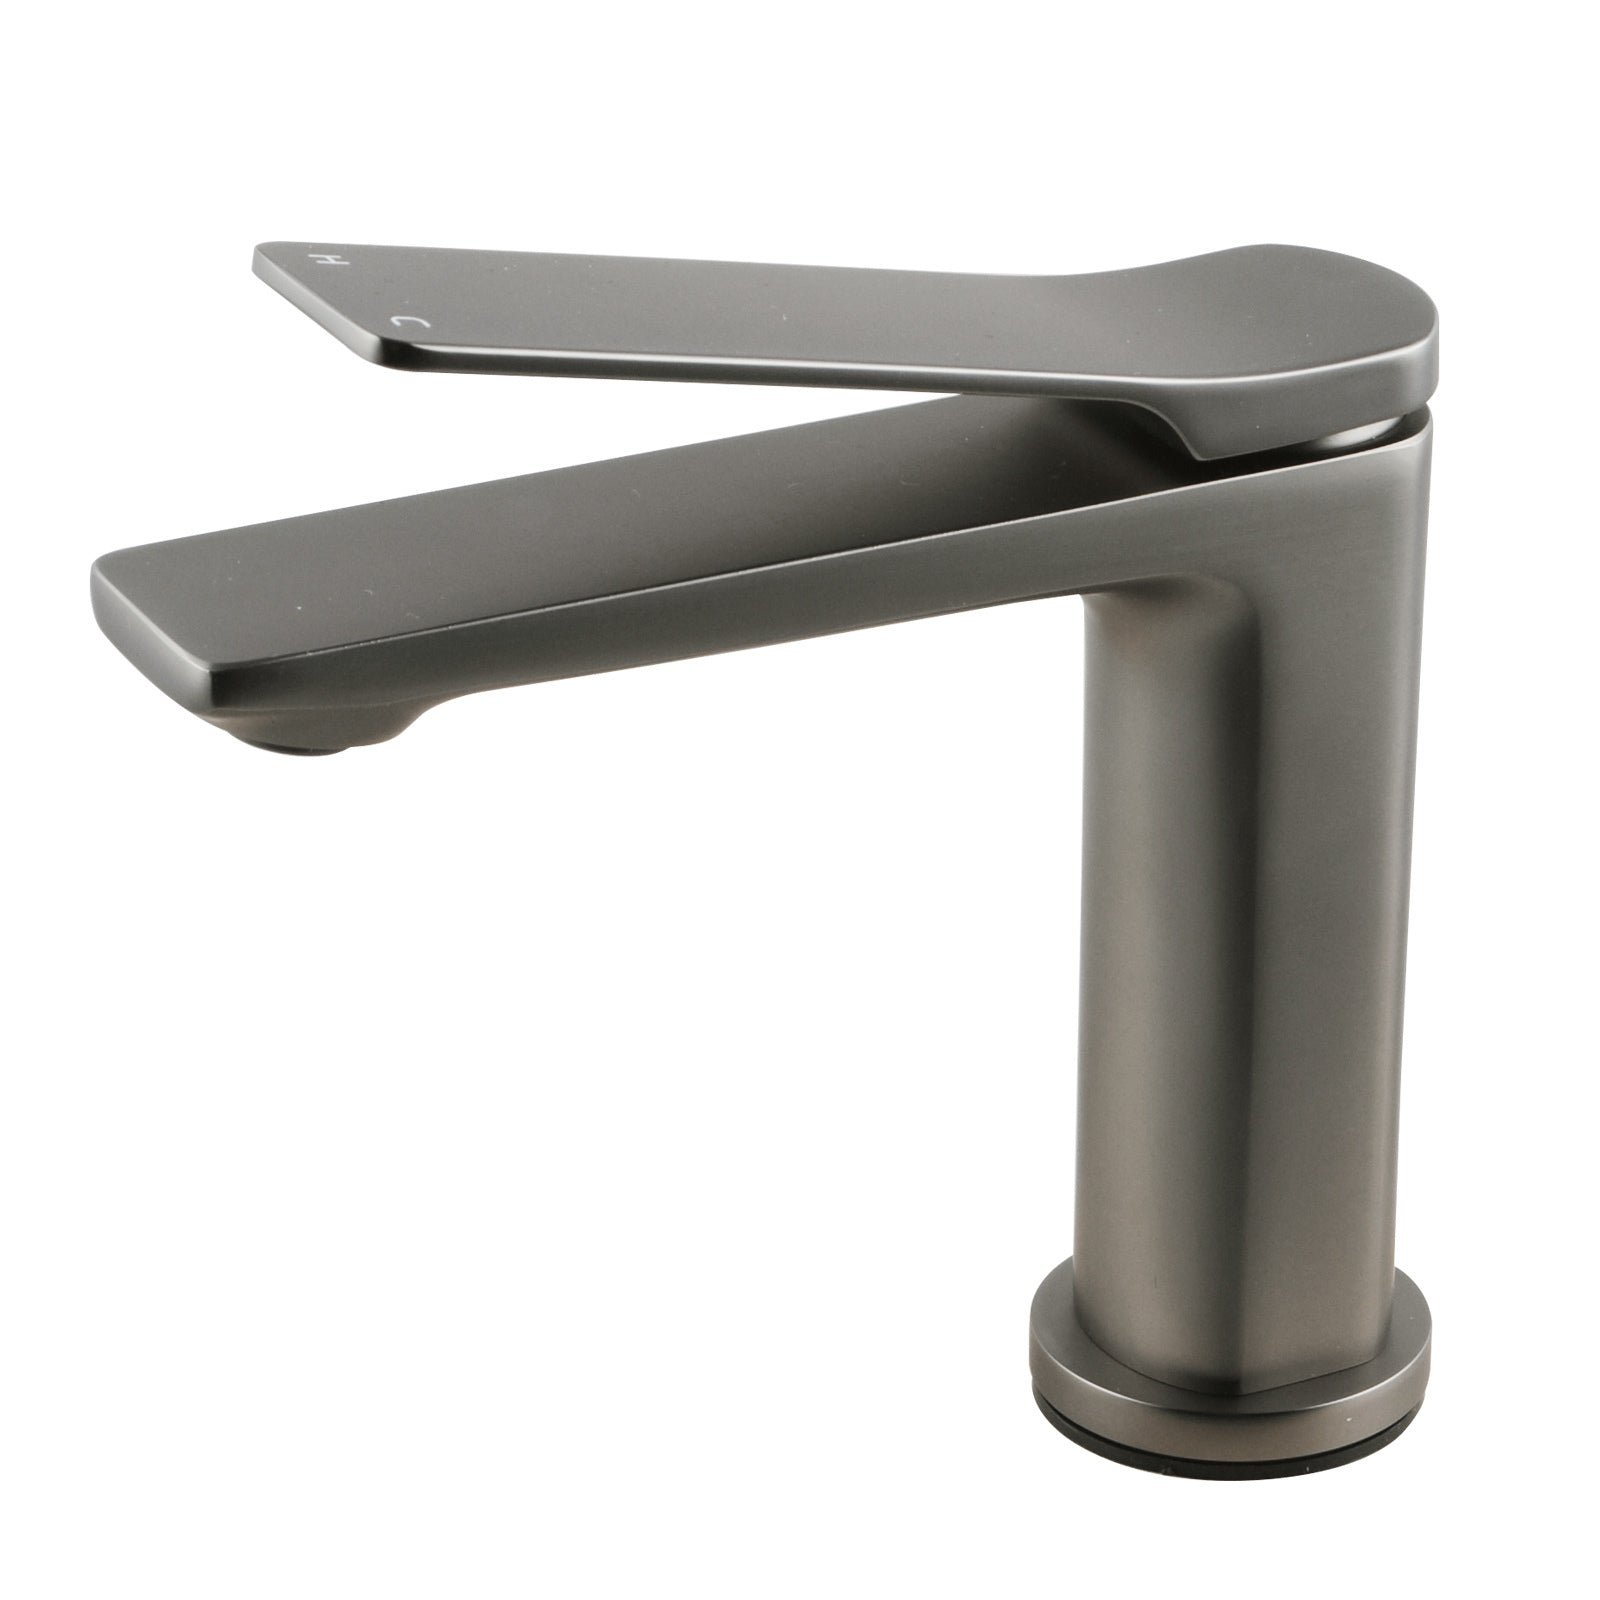 RUSHY Gun Metal Grey Basin Mixer